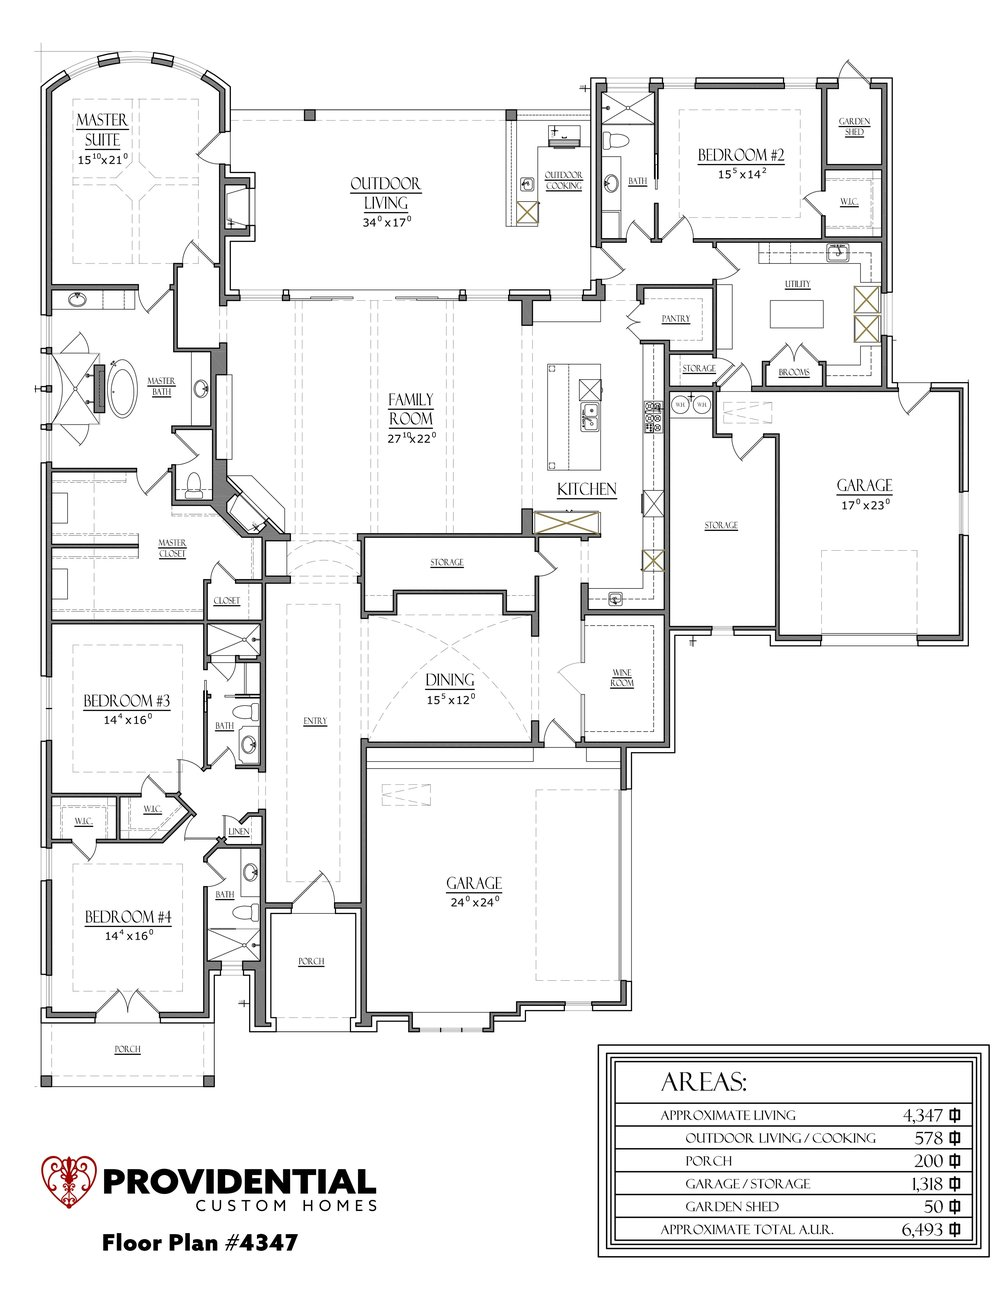 The FLOOR PLAN #4347.jpg